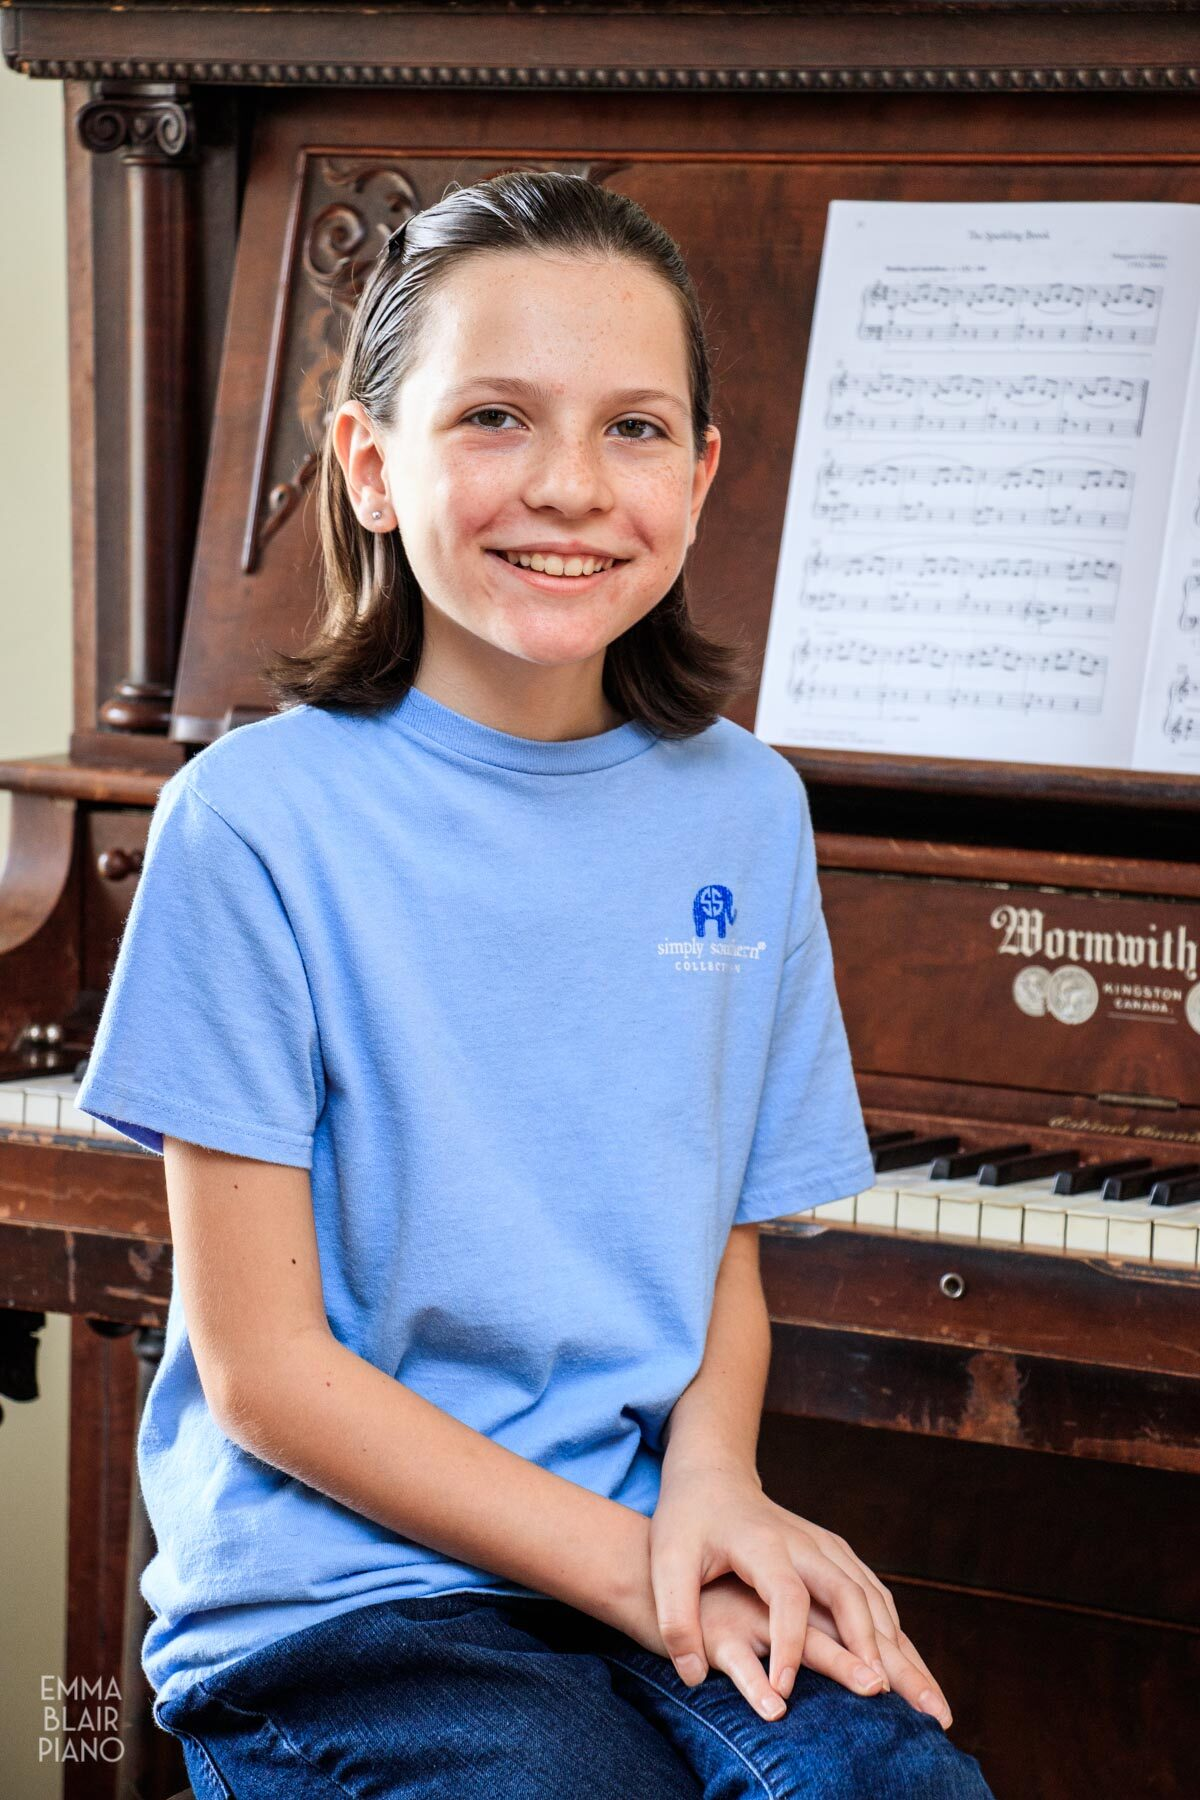 young girl sitting at the piano and smiling